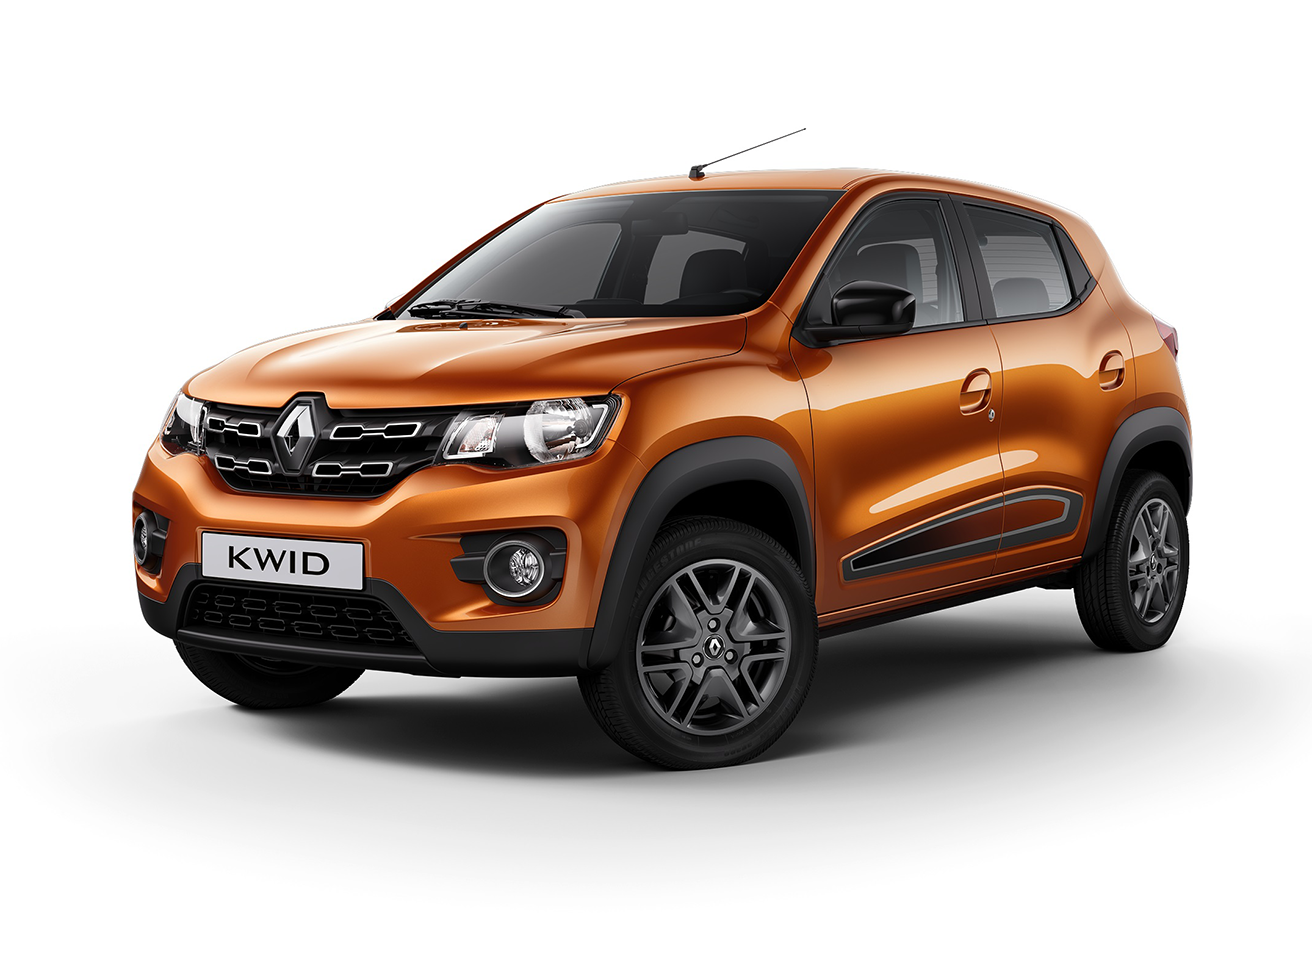 RENAULT - KWID - 1.0 12V SCE FLEX INTENSE MANUAL